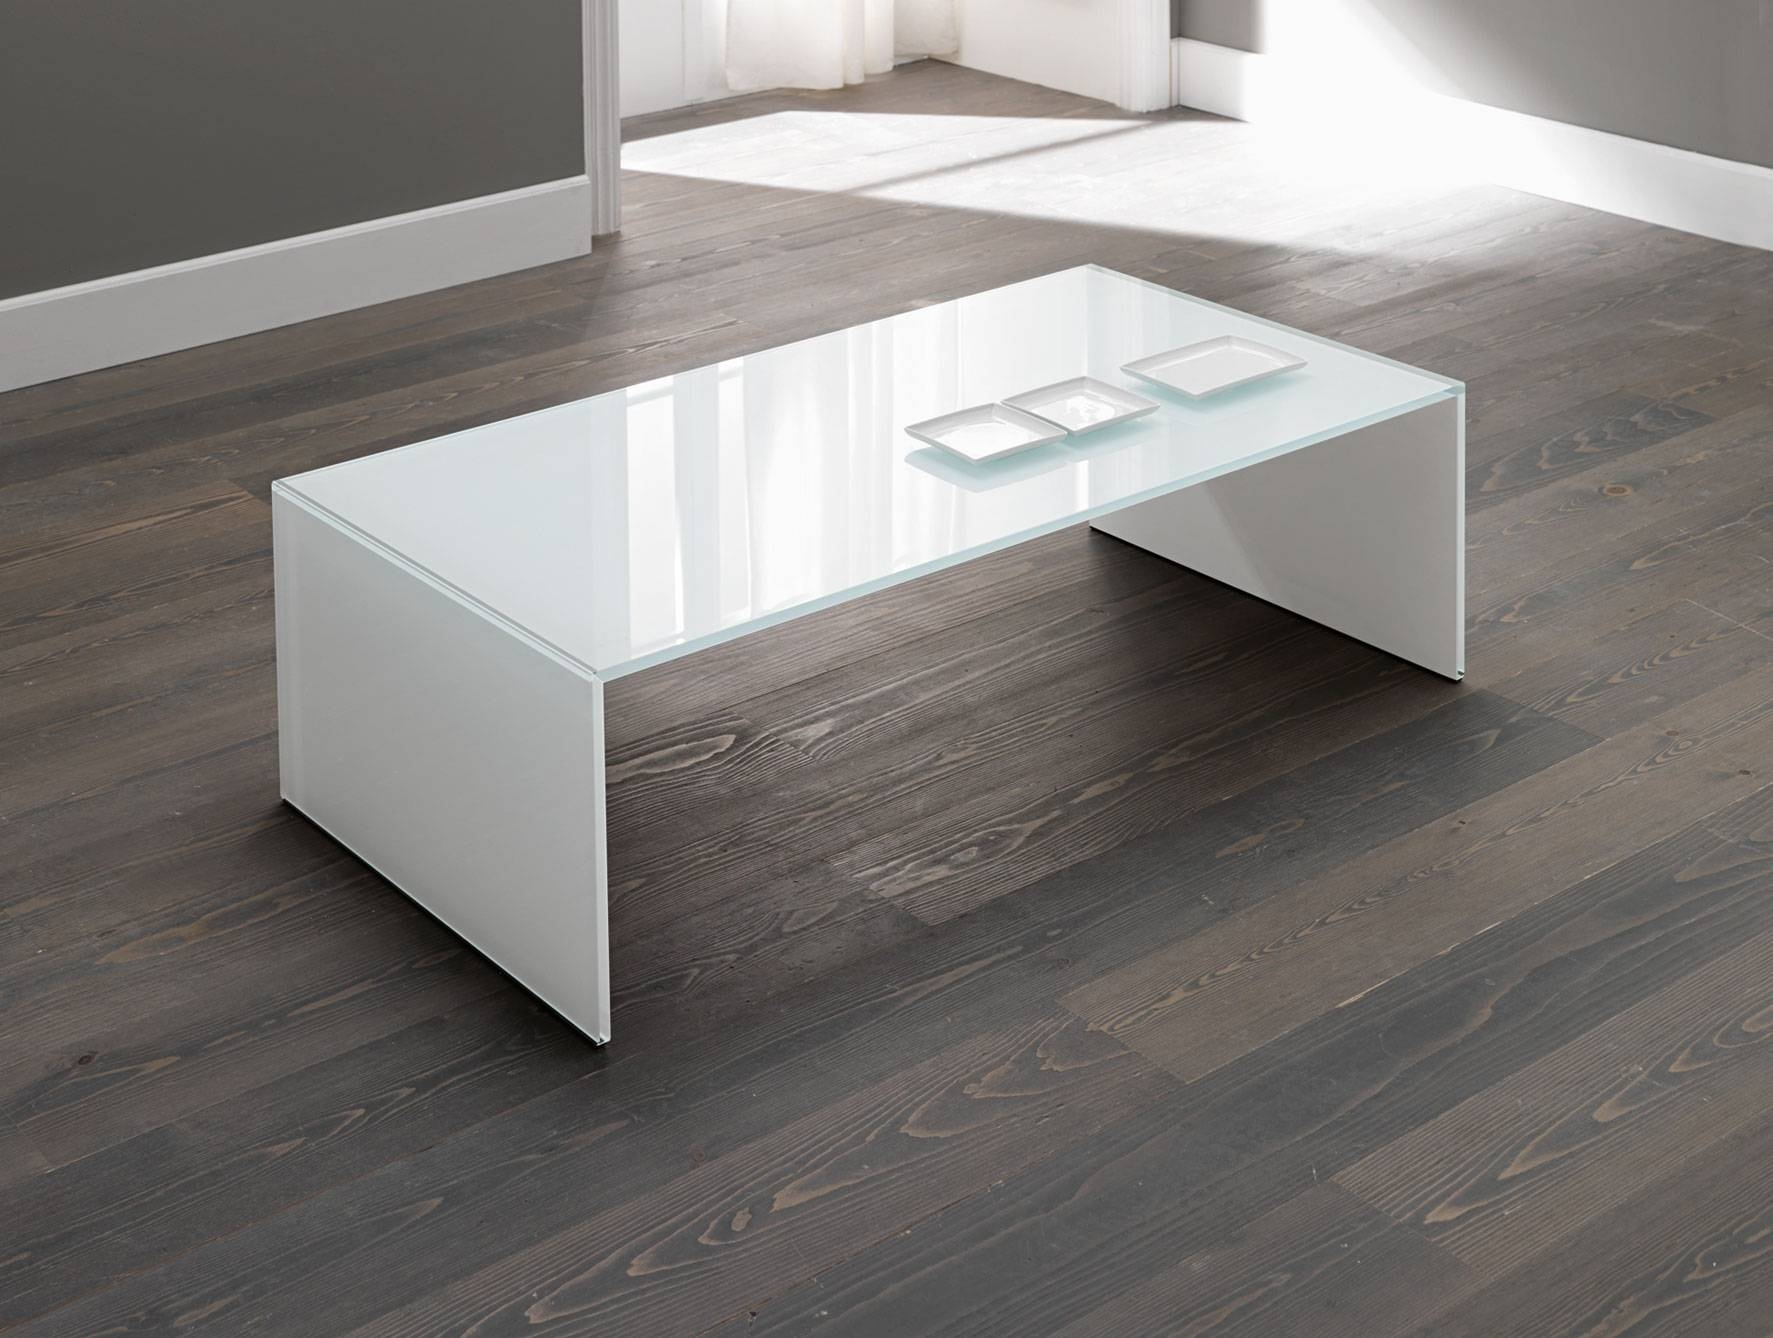 How To Find A Perfect White Coffee Tables – Large White Coffee For Oval Gloss Coffee Tables (View 8 of 30)